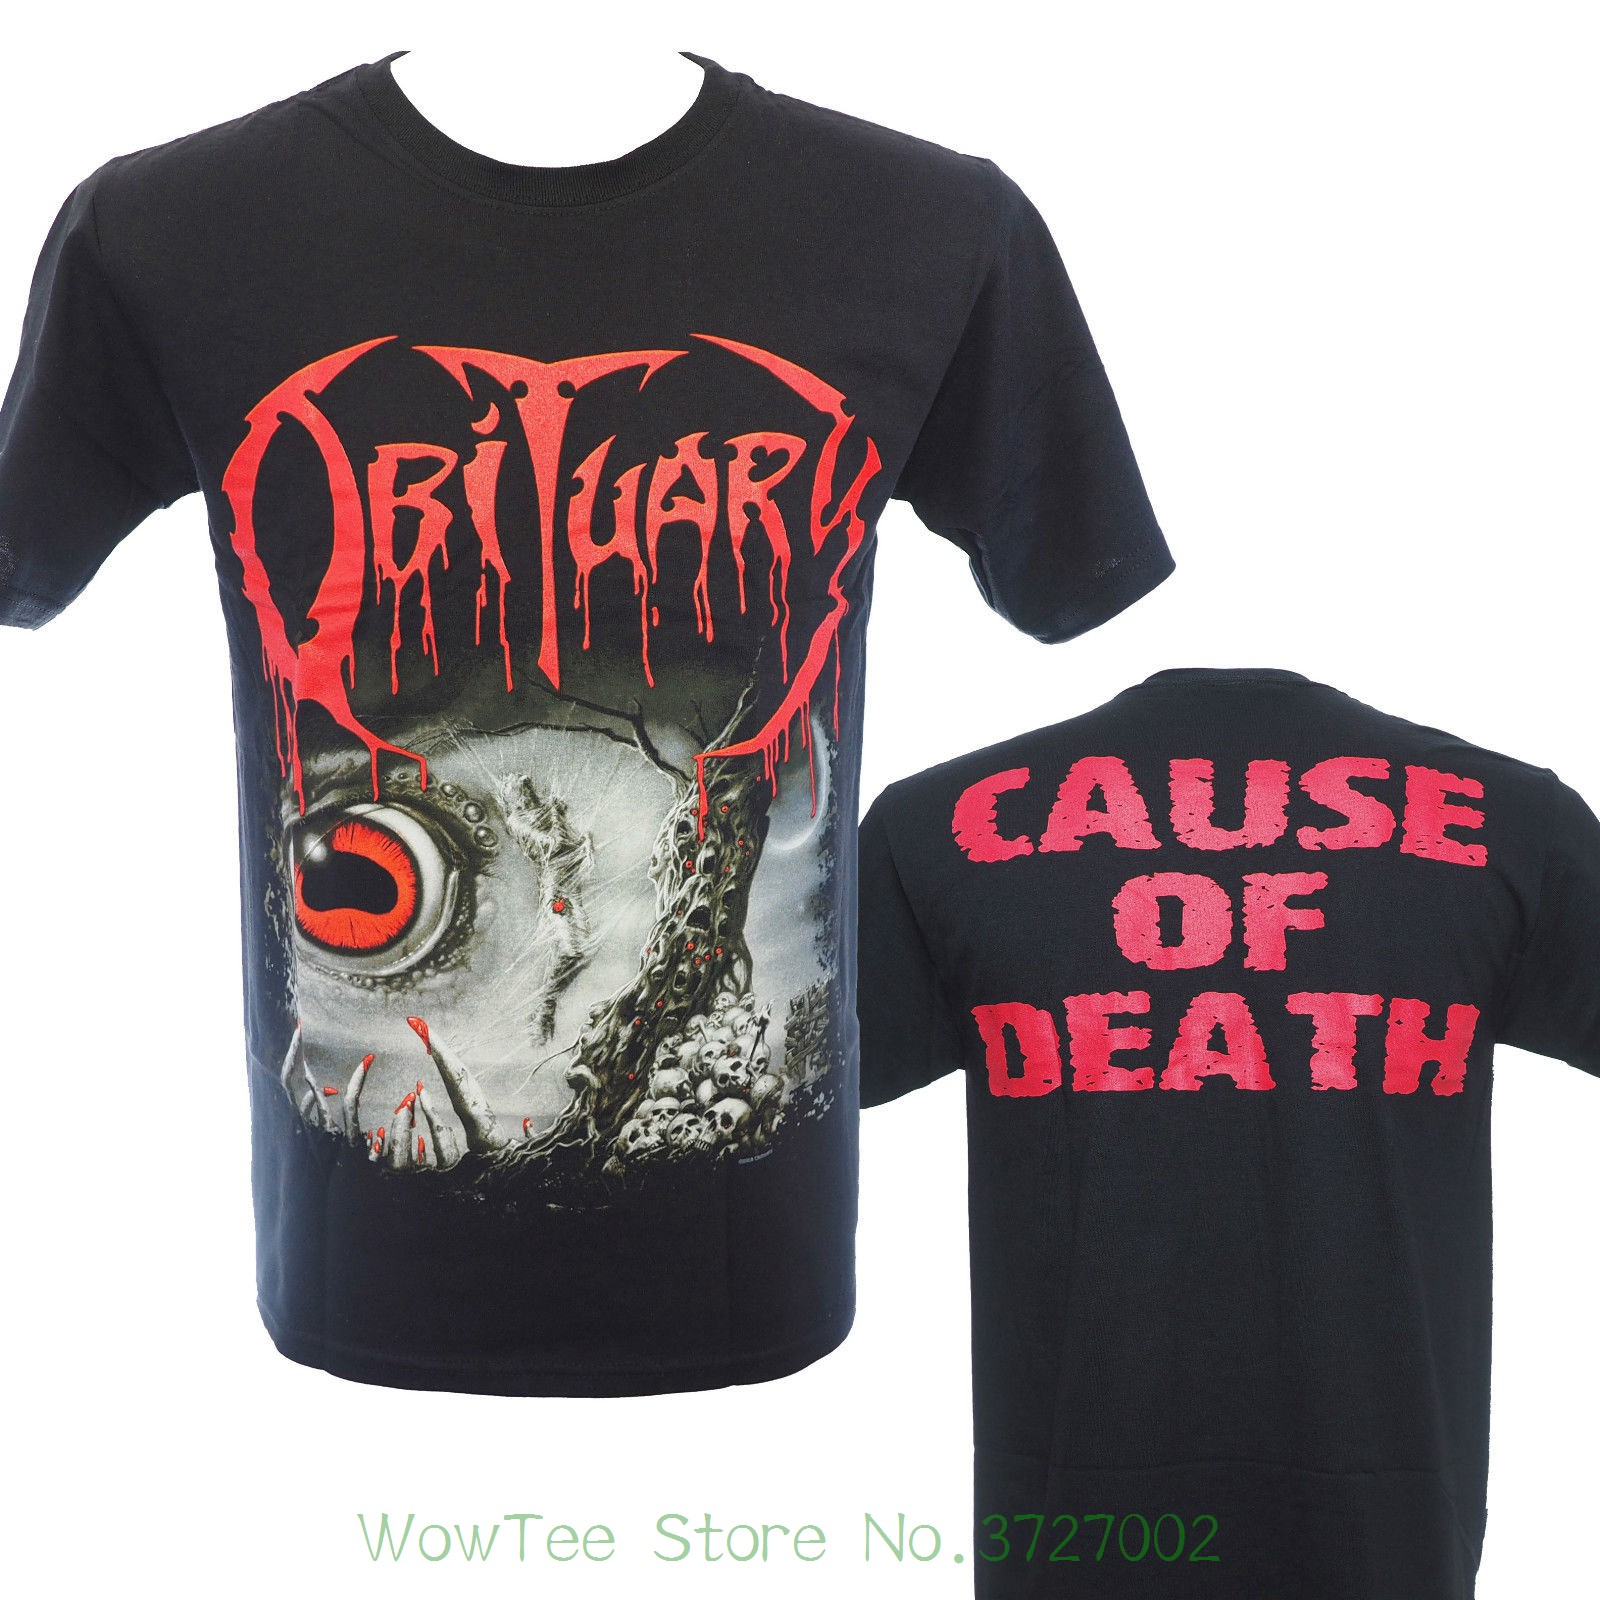 5aaf0da5 Obituary - Cause Of Death 2 - Official Licensed T-shirt - New M L Xl 2018  Hot Sale Super Fashion